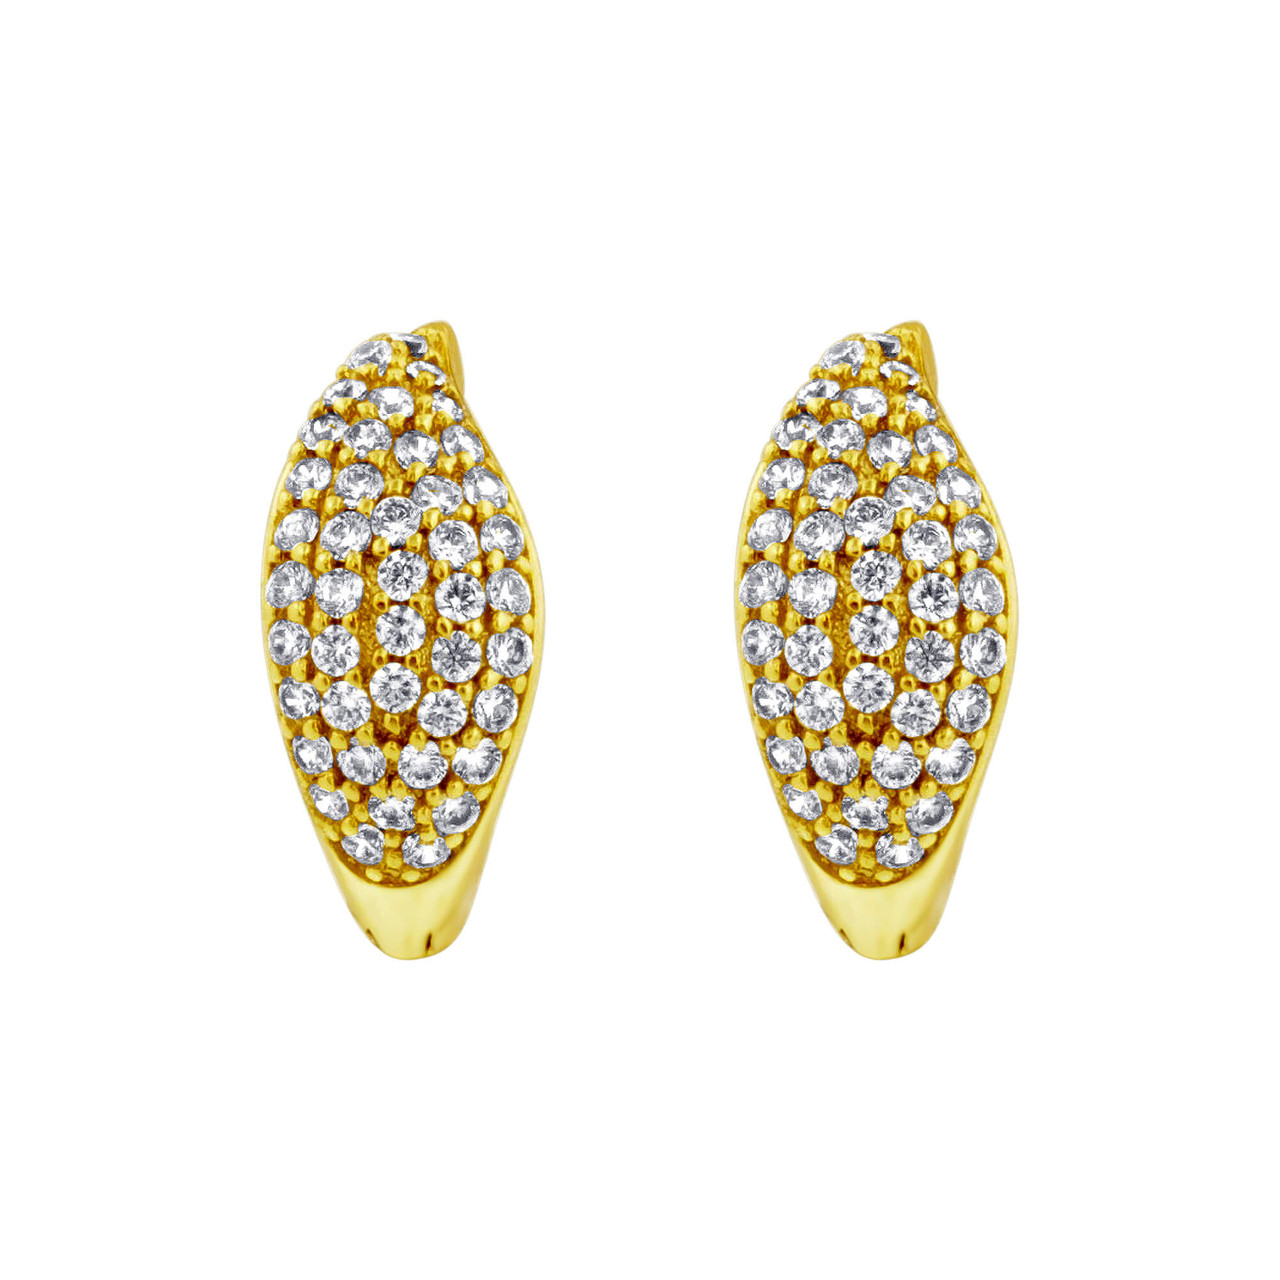 18K Gold Layered Clear Cubic Zirconia 14mm Huggies Earrings (14mm Diameter)